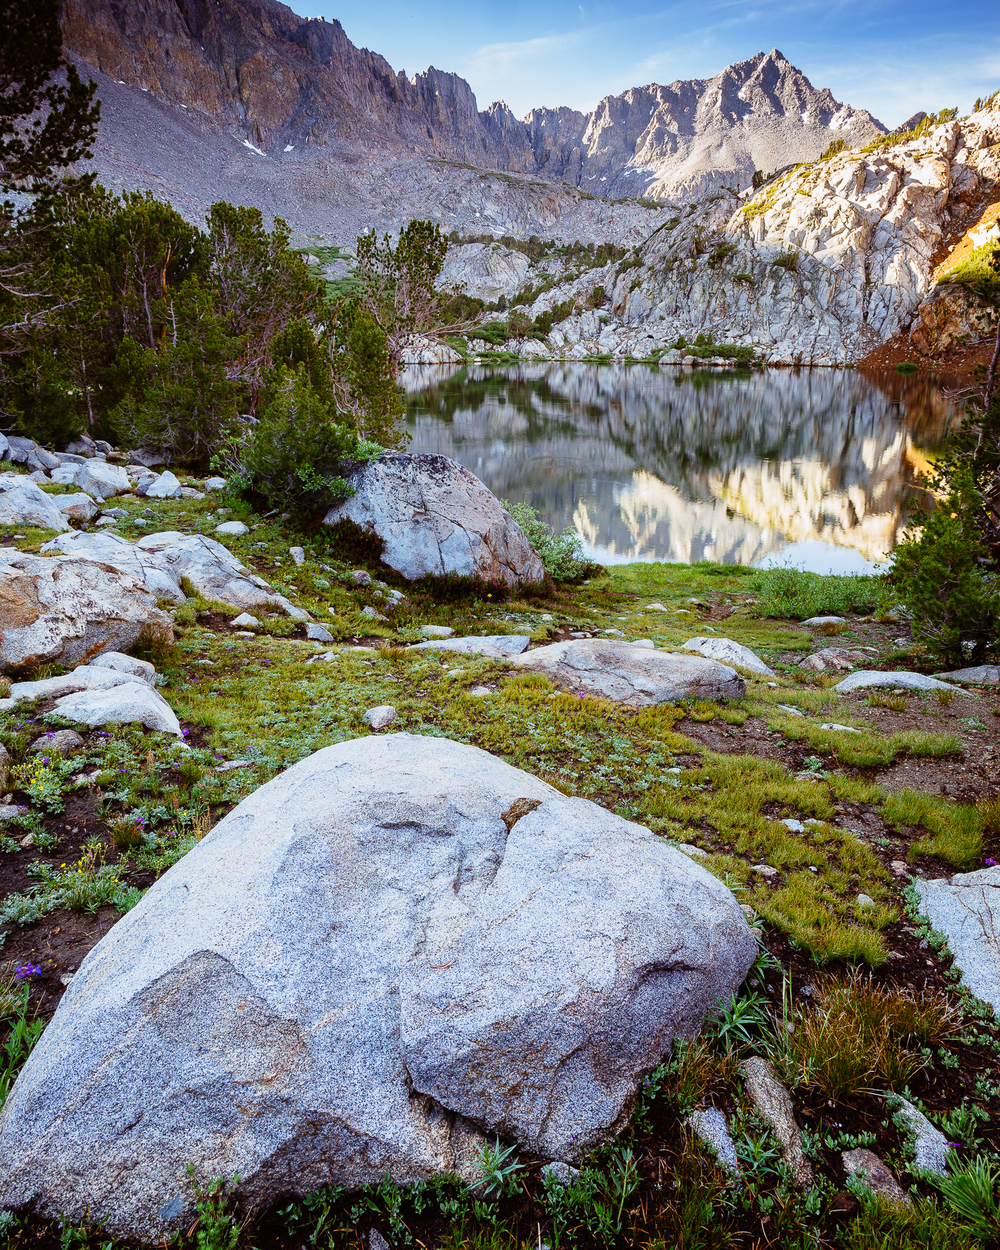 Kings Canyon National Park Backcountry, California, USA